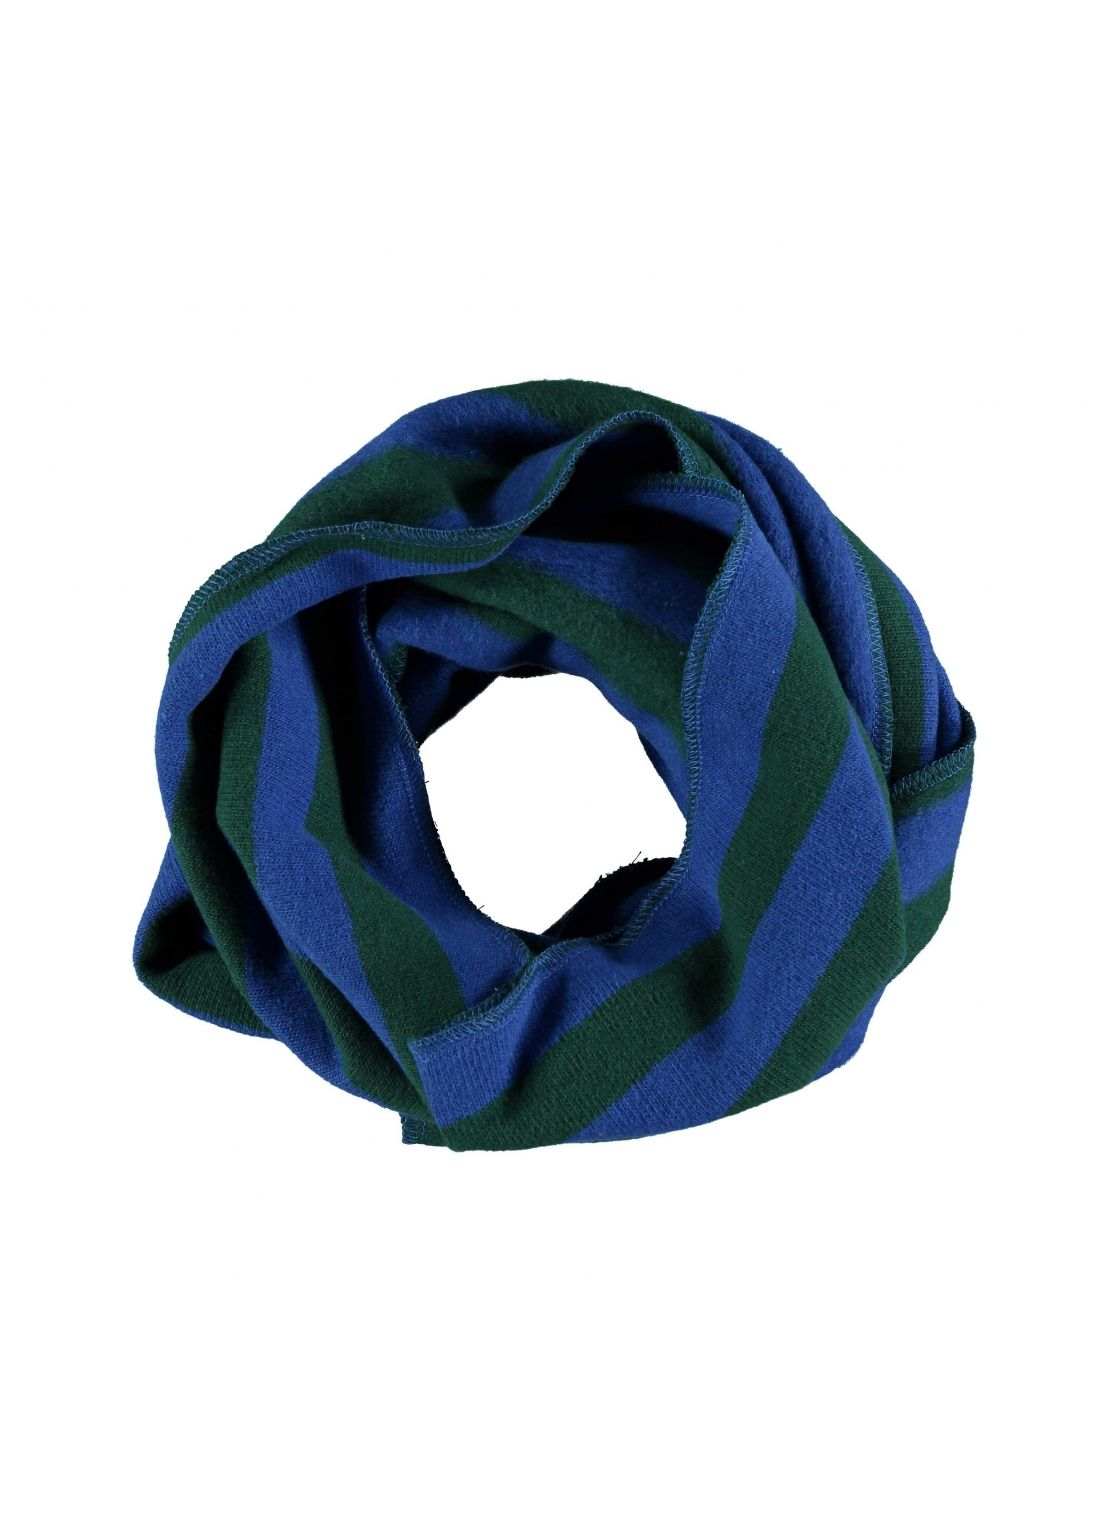 Kid SCARF Unisex 70% CO 20% PC 3% VI 2%PA 2% EA - knitted